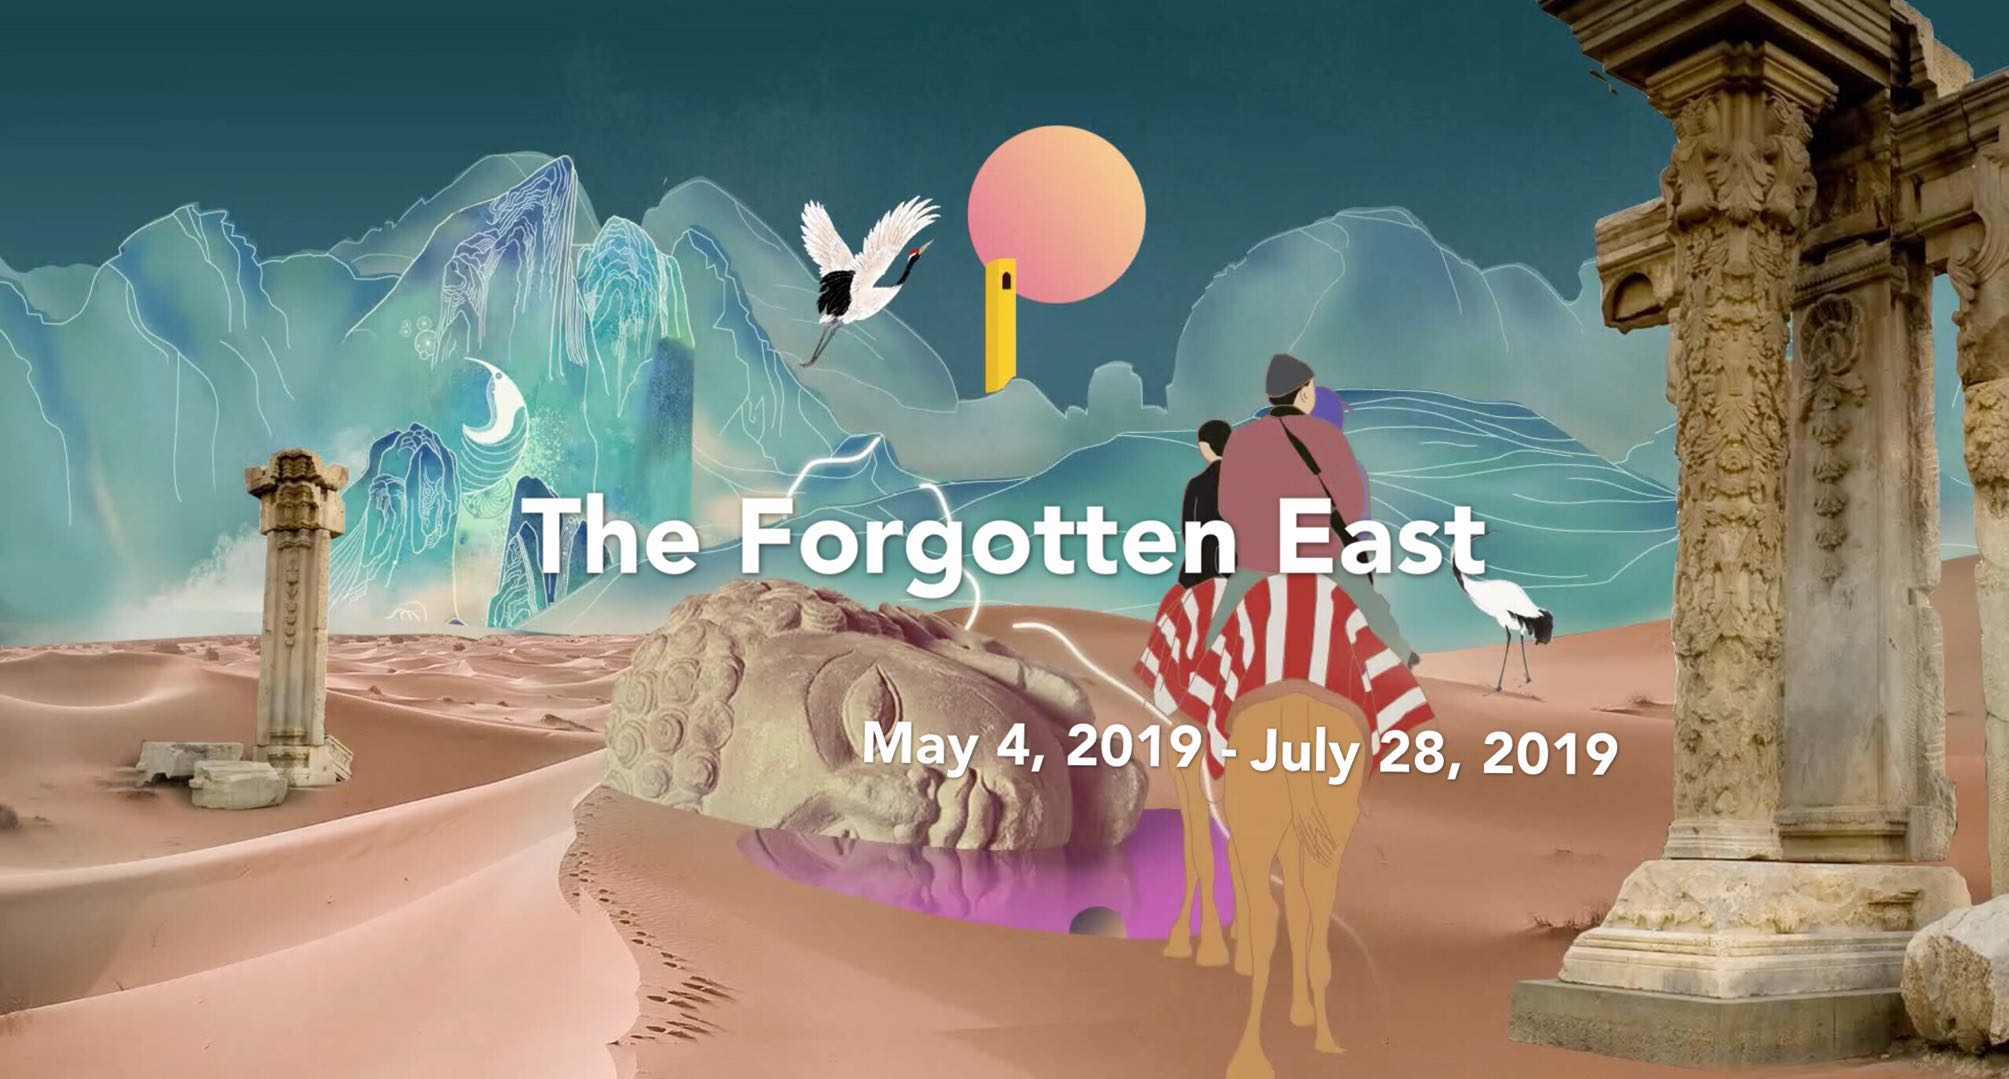 Tickets for The Forgotten East in New York from ShowClix